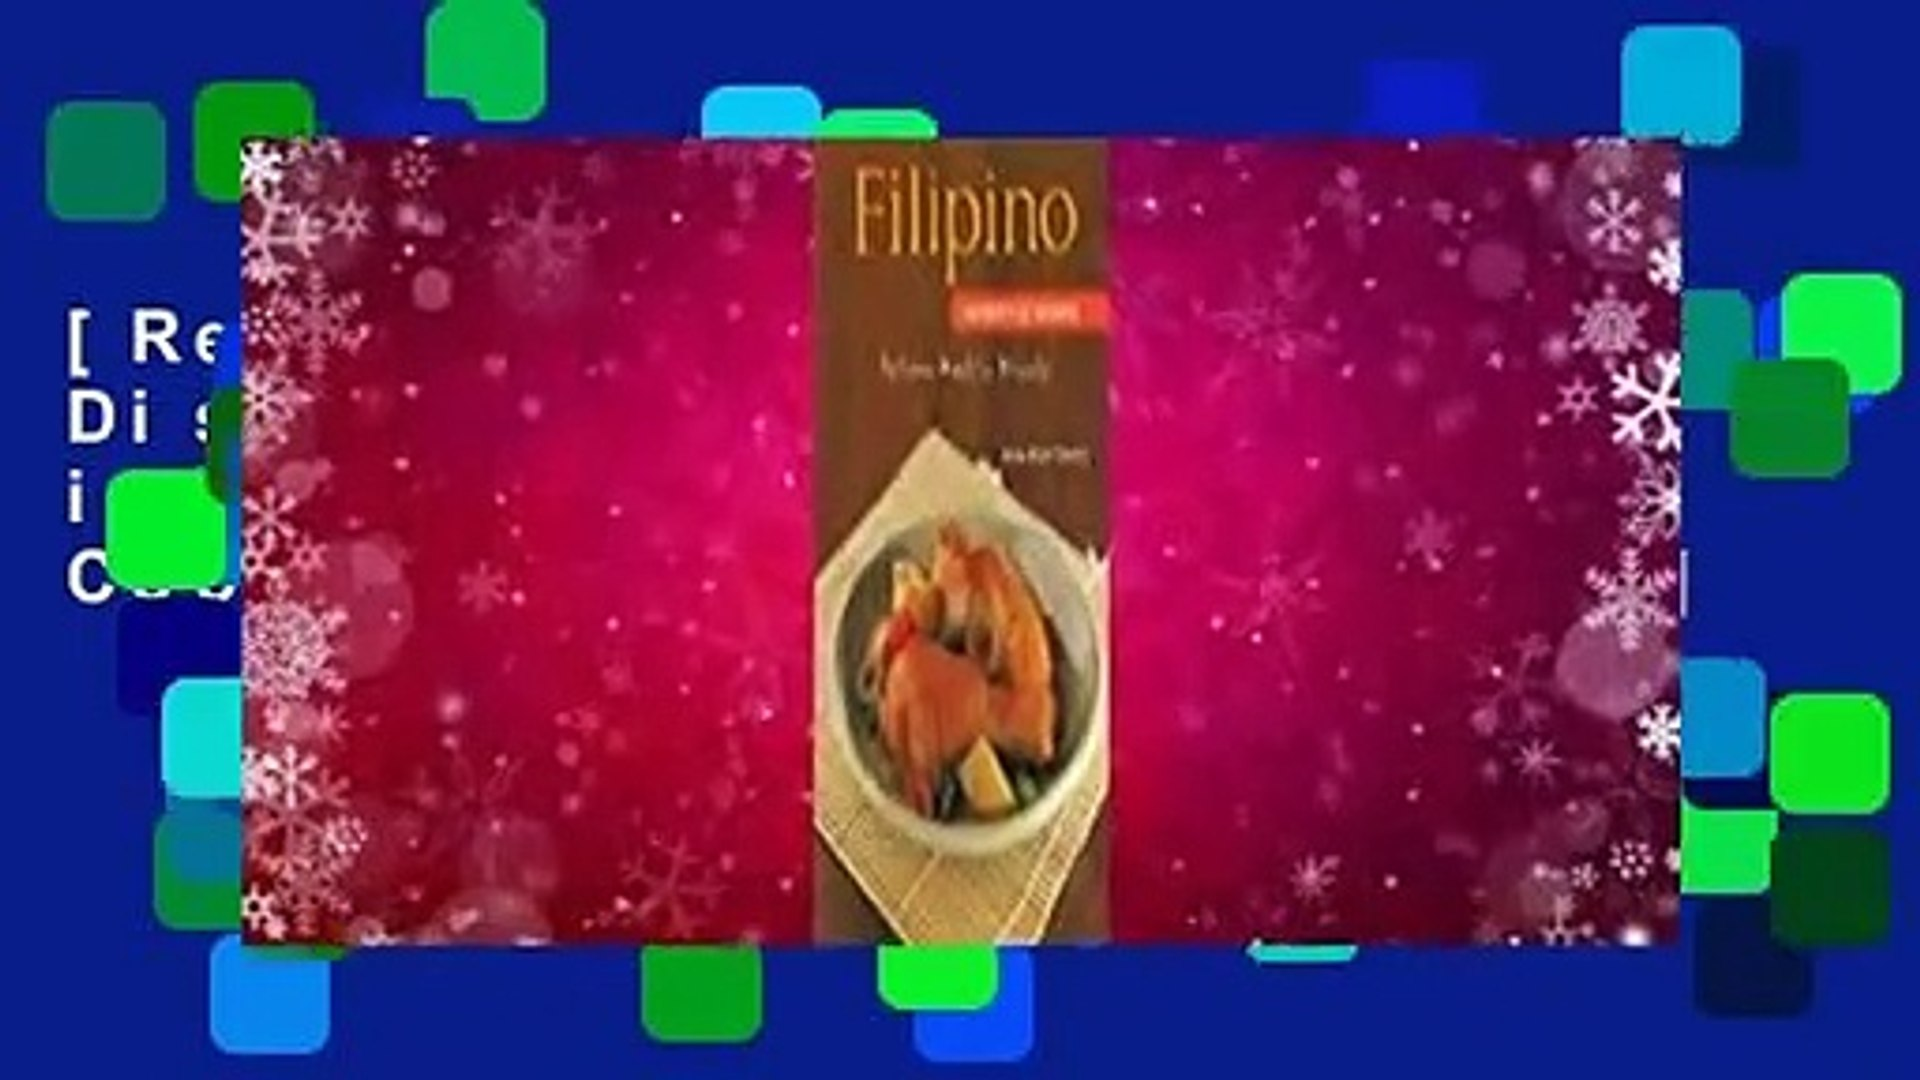 [Read] Filipino Homestyle Dishes: Delicious Meals in Minutes [Filipino Cookbook, Over 60 Recipes]